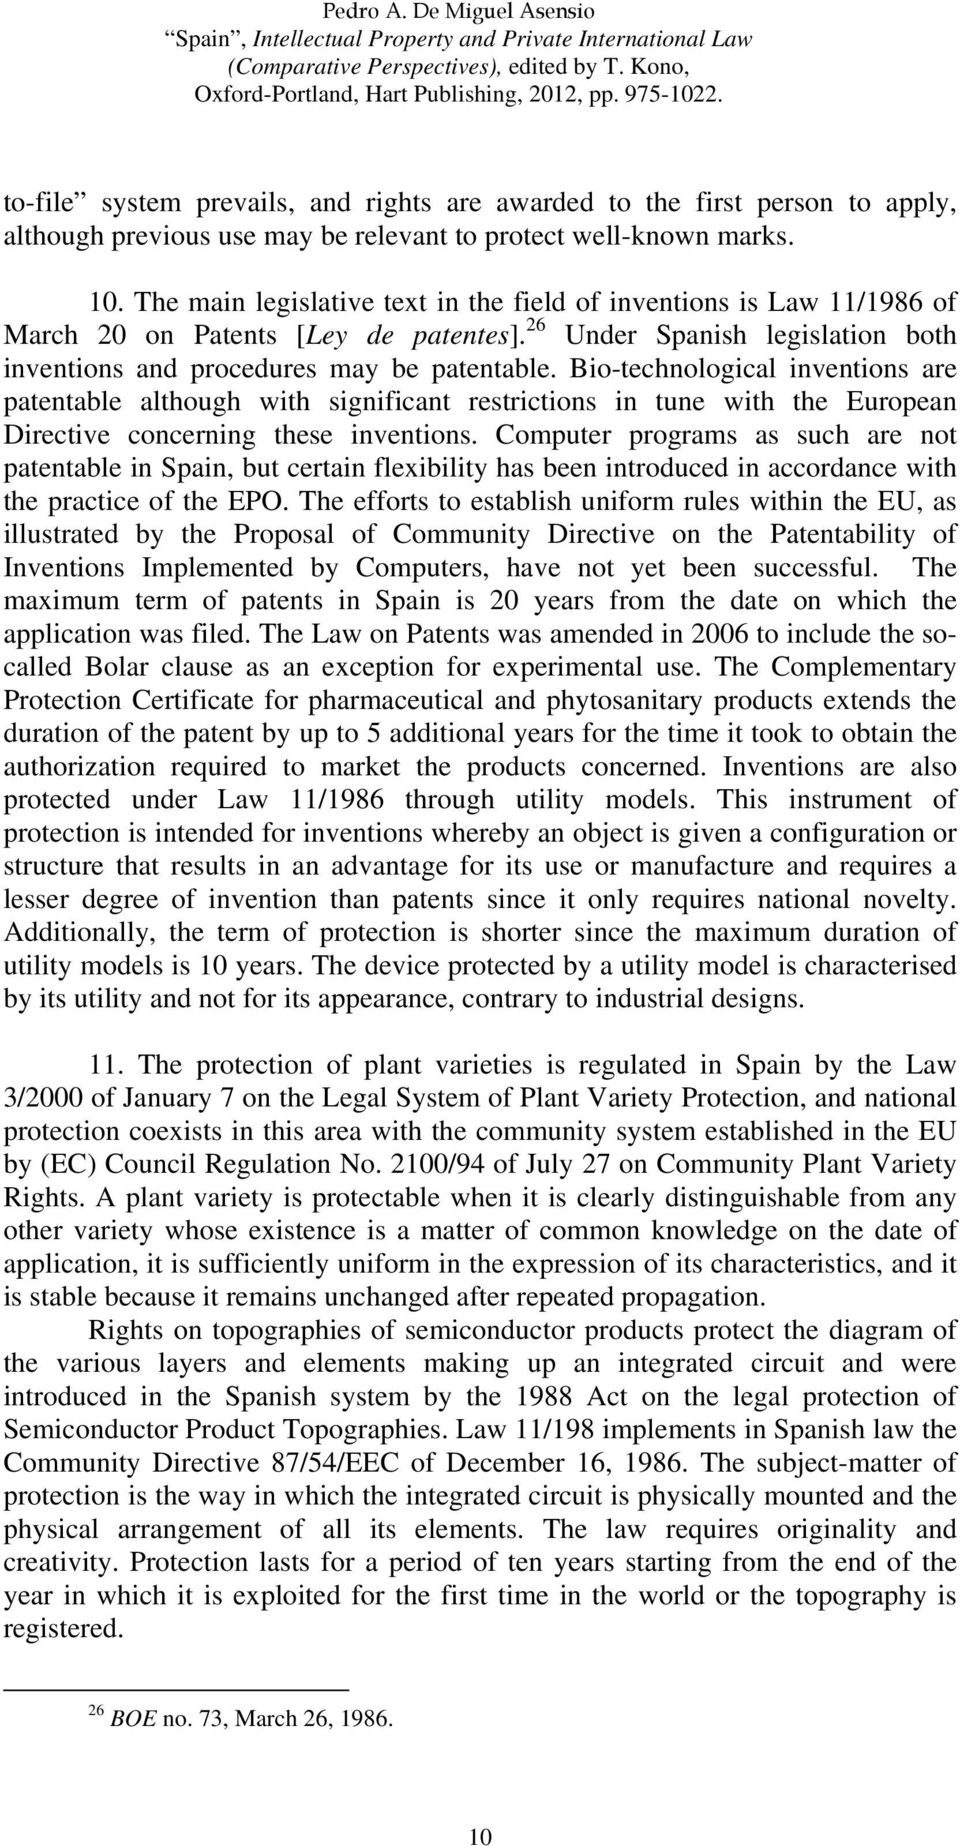 Bio-technological inventions are patentable although with significant restrictions in tune with the European Directive concerning these inventions.